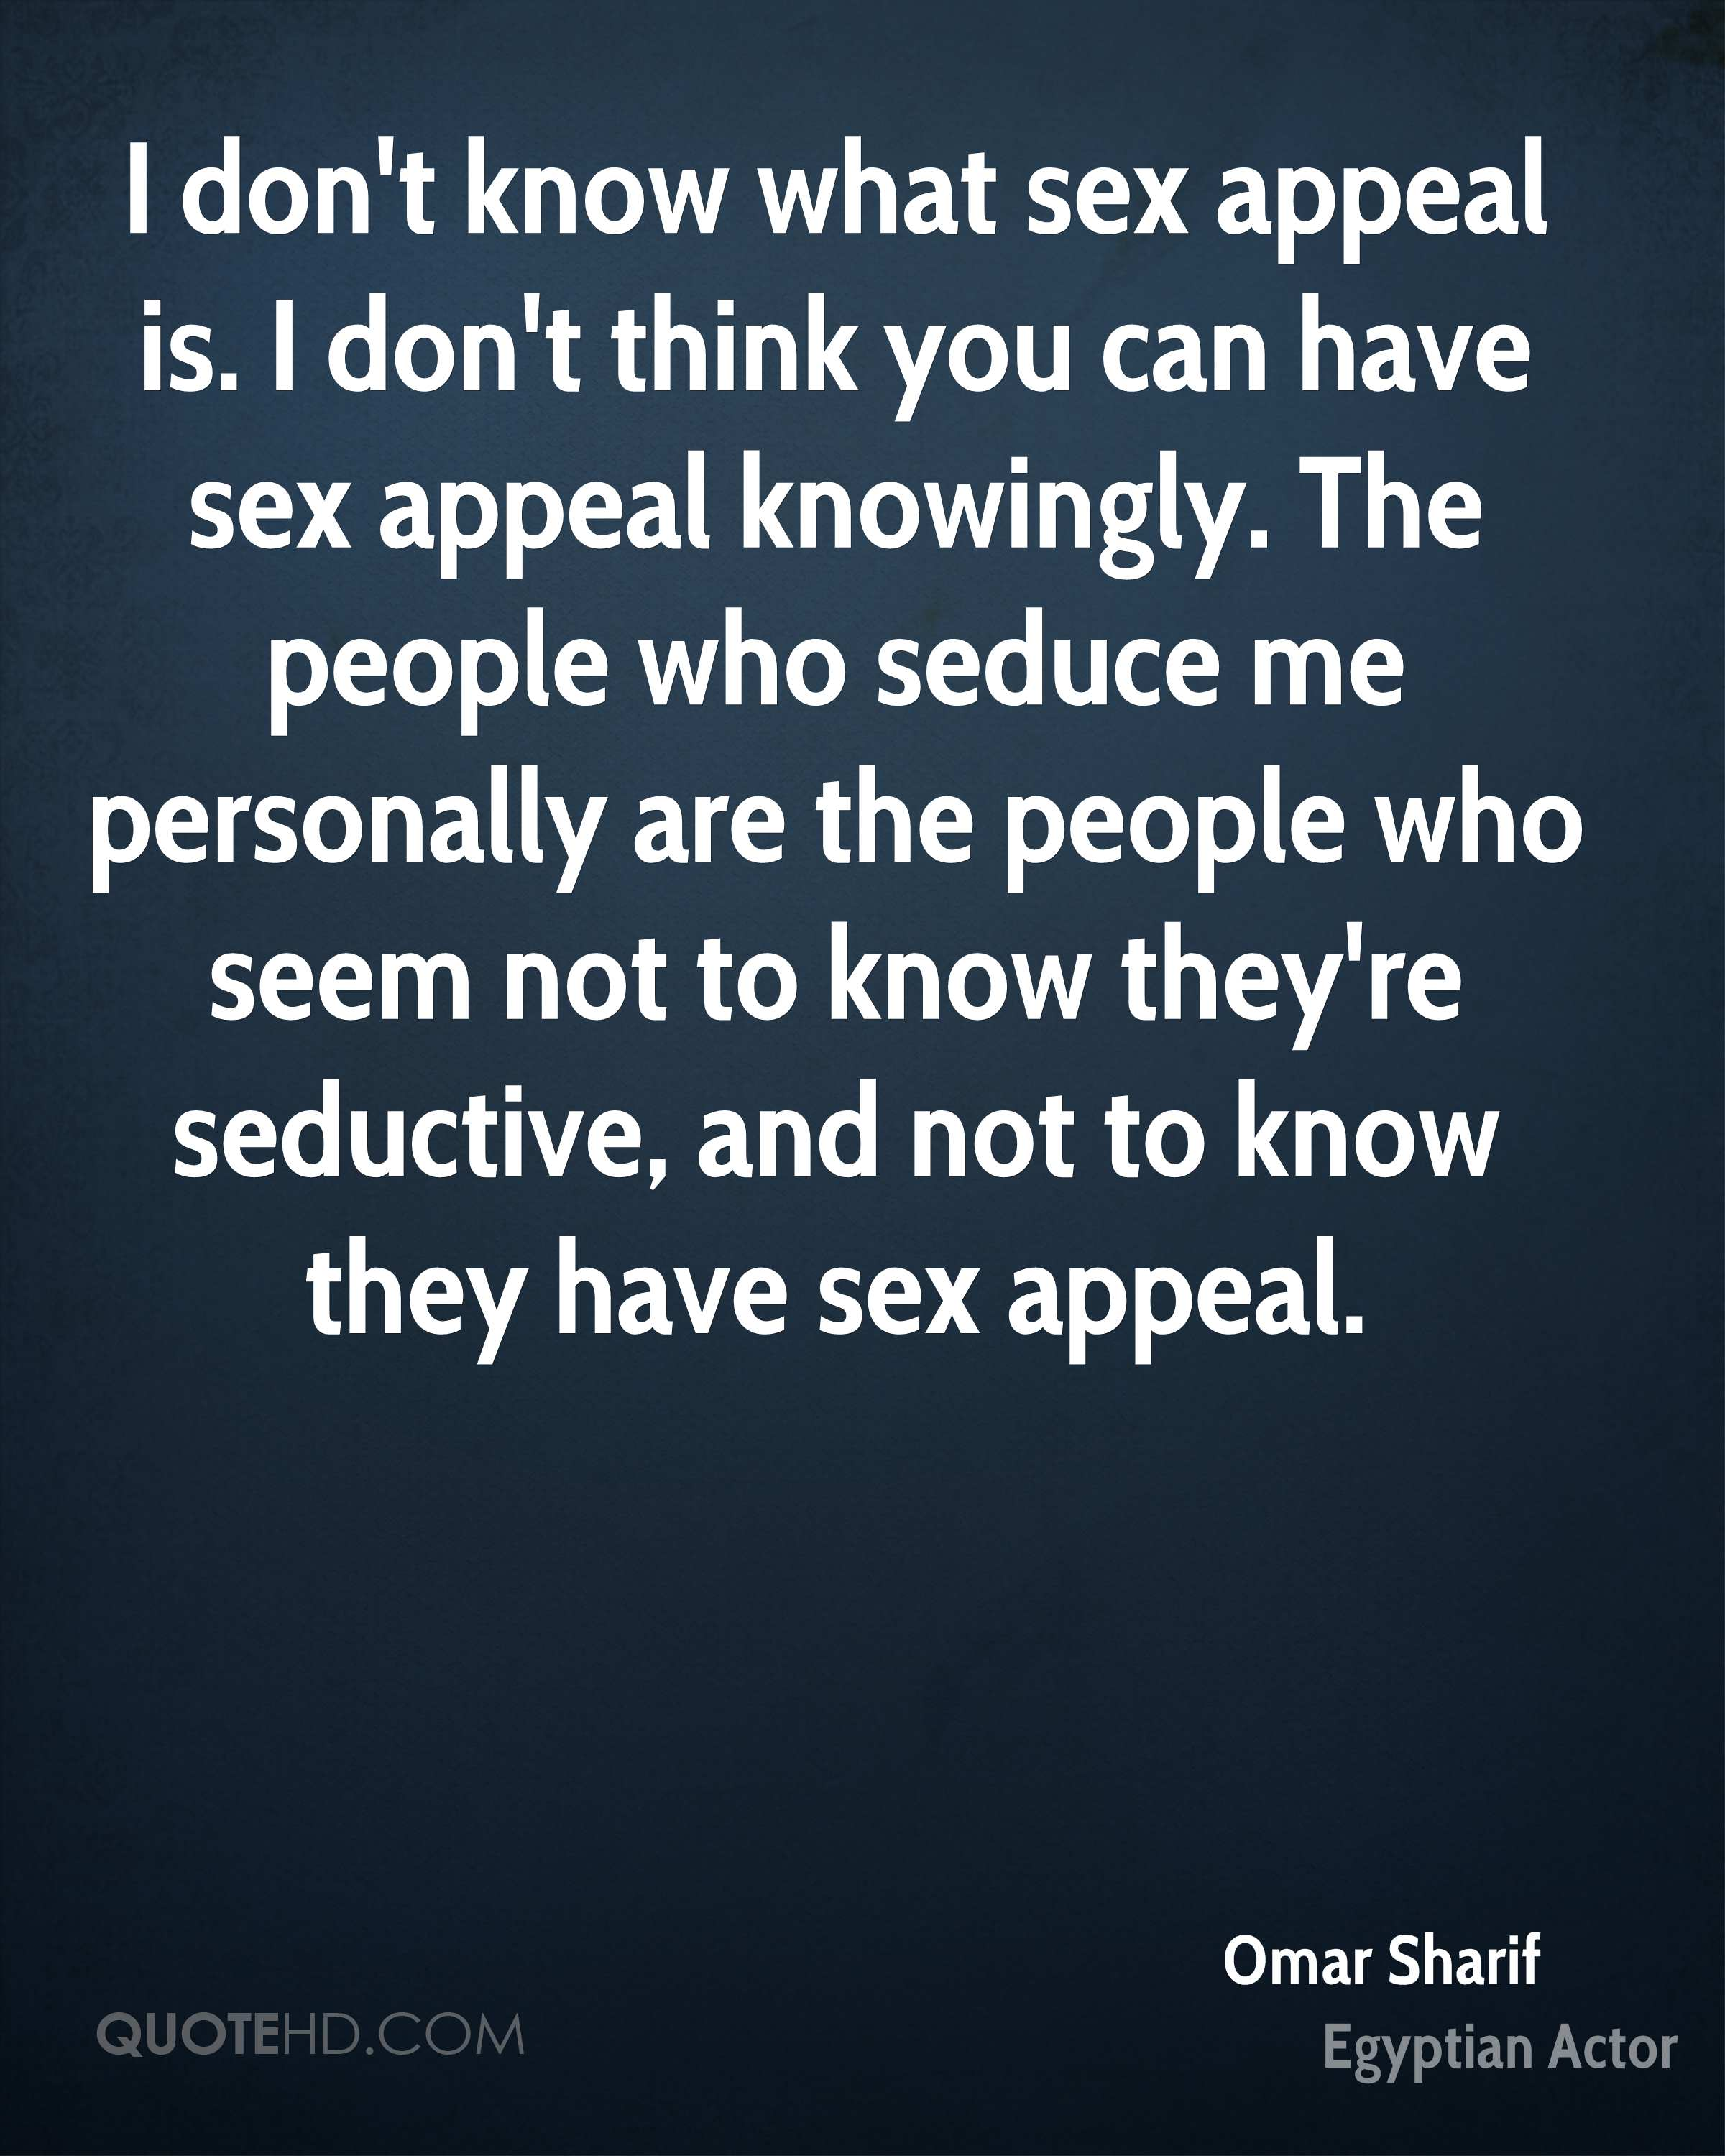 I don't know what sex appeal is. I don't think you can have sex appeal knowingly. The people who seduce me personally are the people who seem not to know they're seductive, and not to know they have sex appeal.